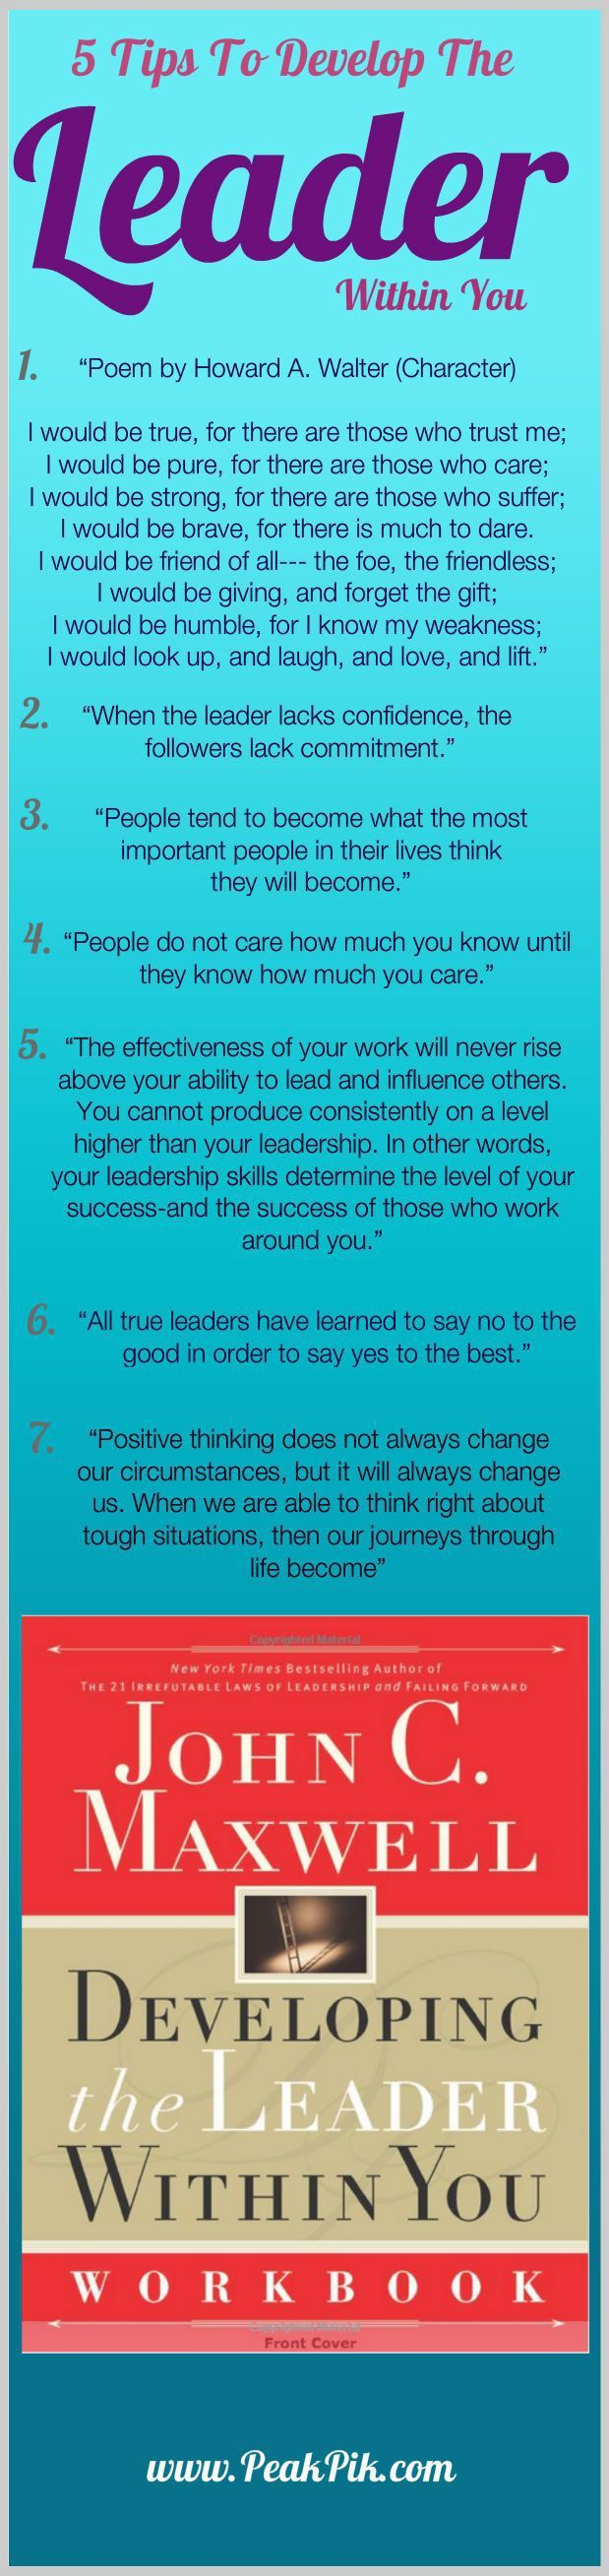 Daily Tips And Motivation Developing the Leader Within